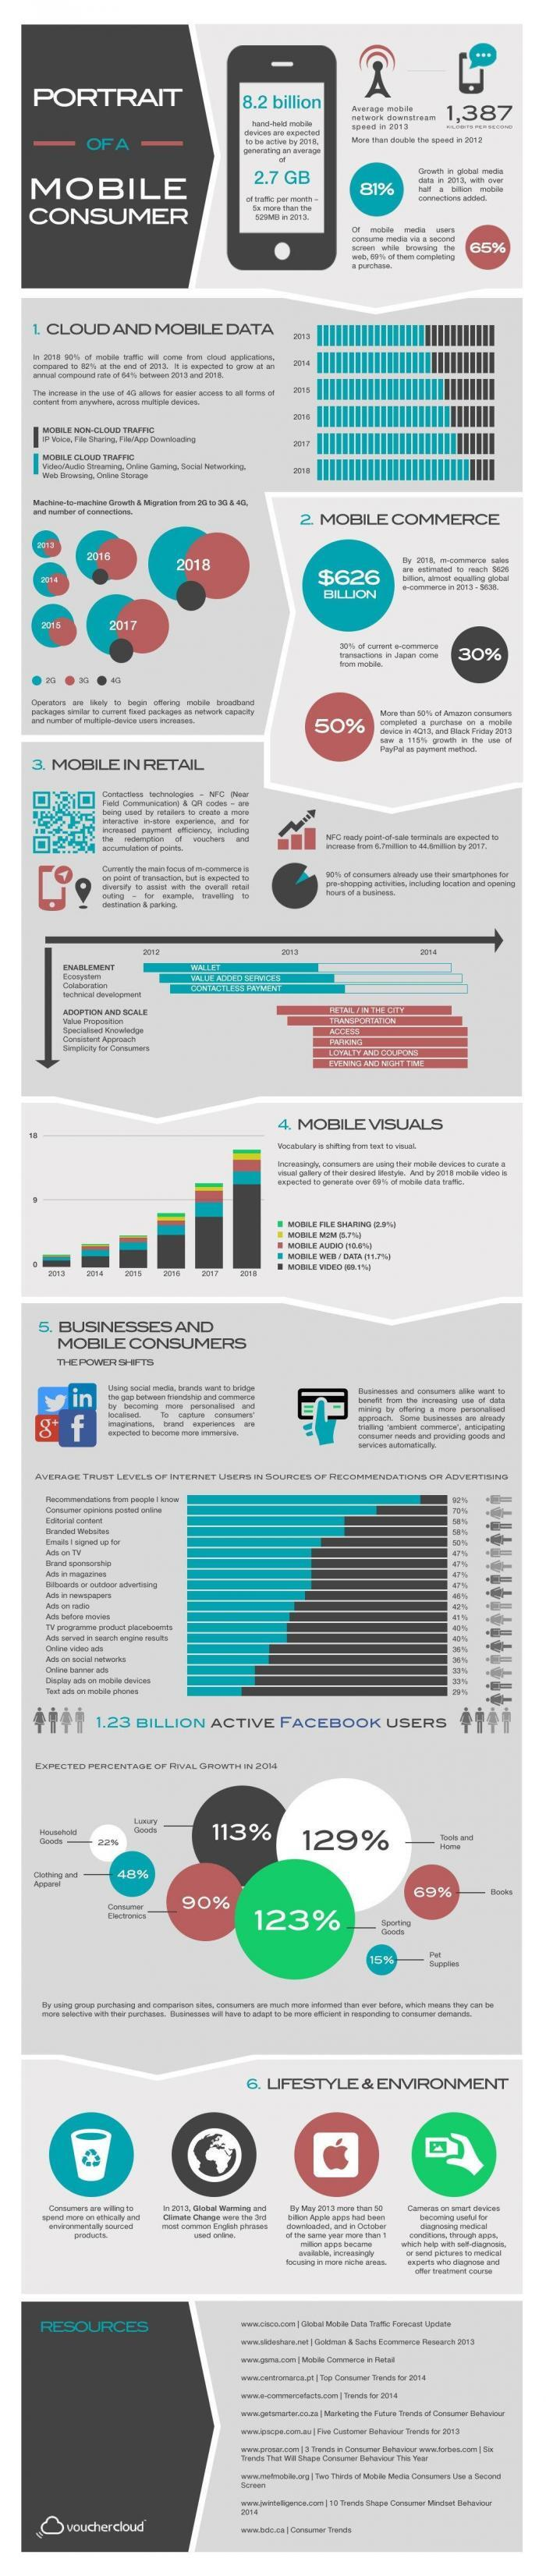 Infographic on Mobile Consumers